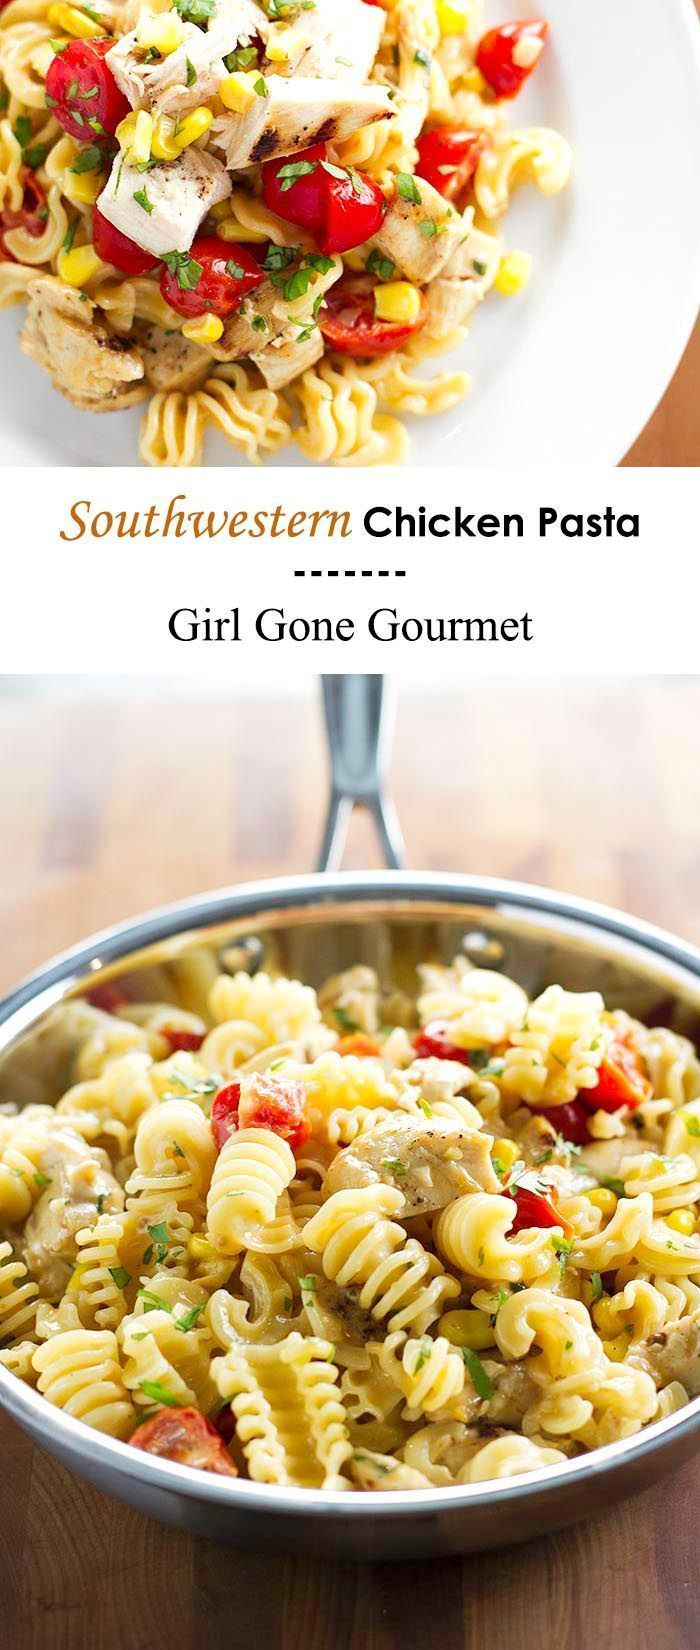 ... tossed together in a creamy chipotle cream sauce | girlgonegourmet.com